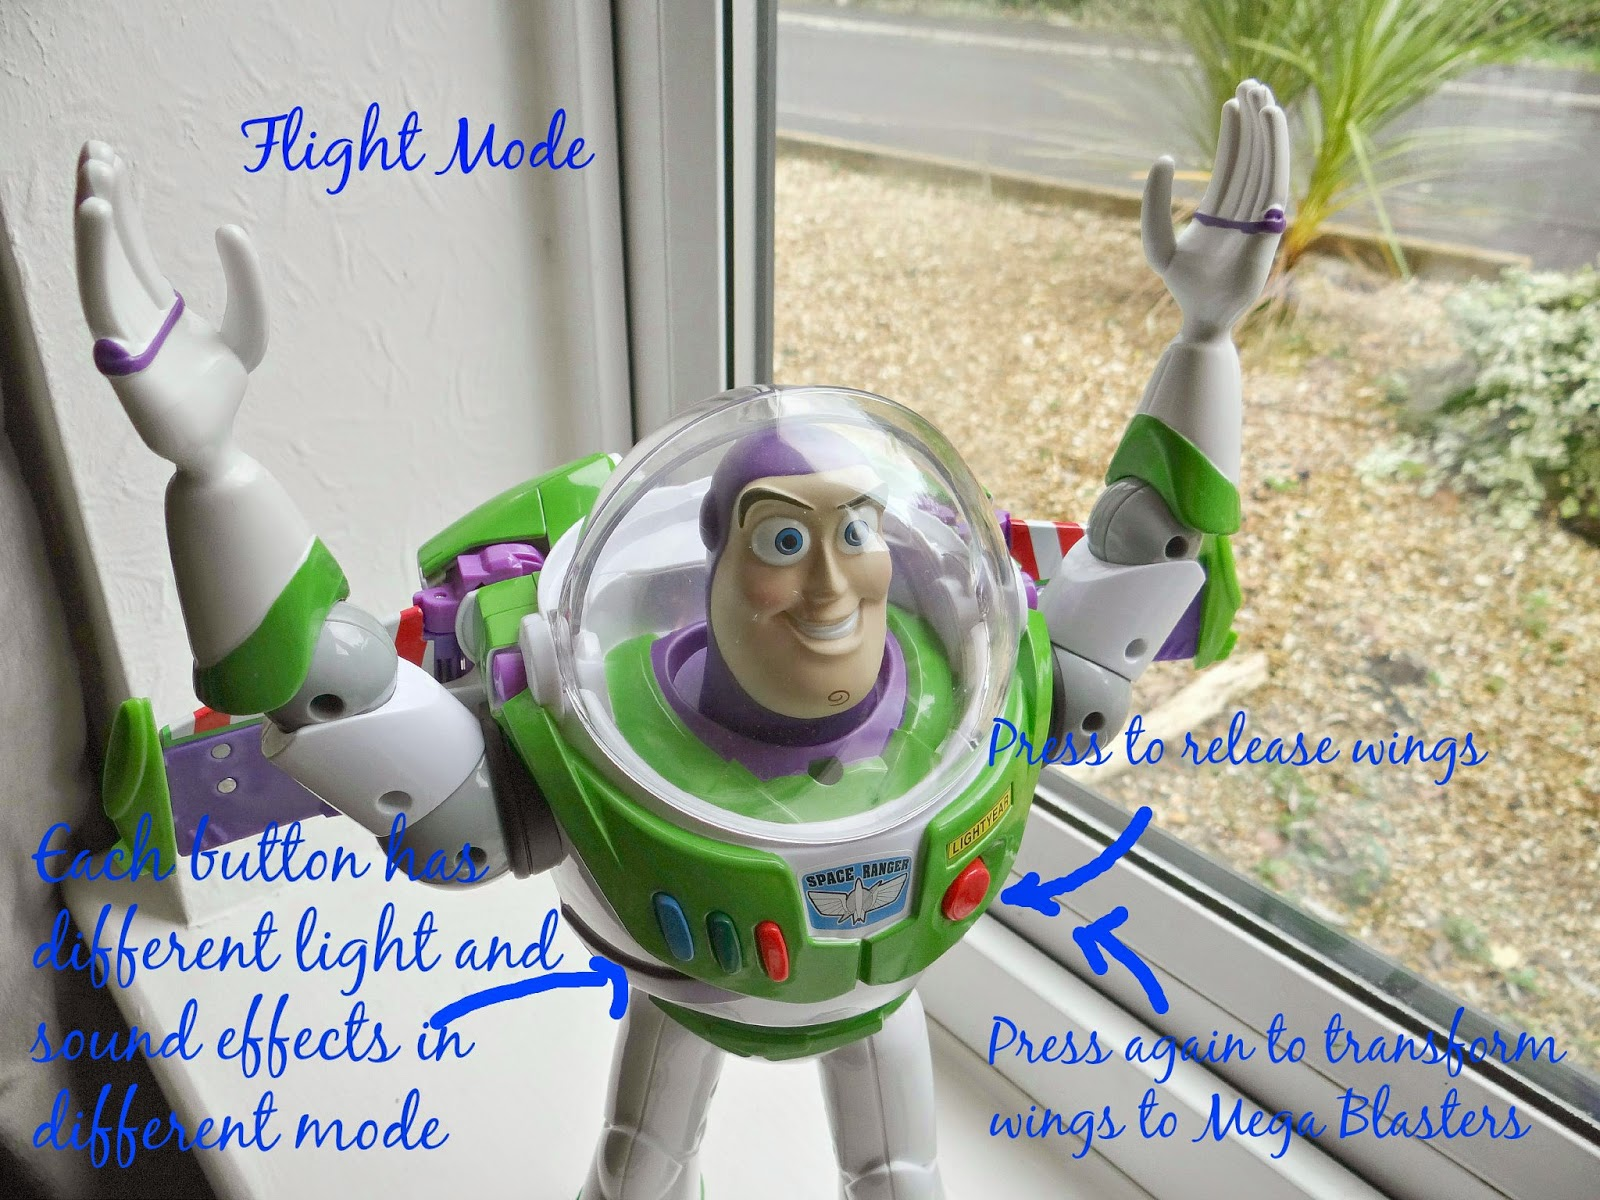 Toy Story, Buzz Lightyear Toy, Christmas Gifts Idea